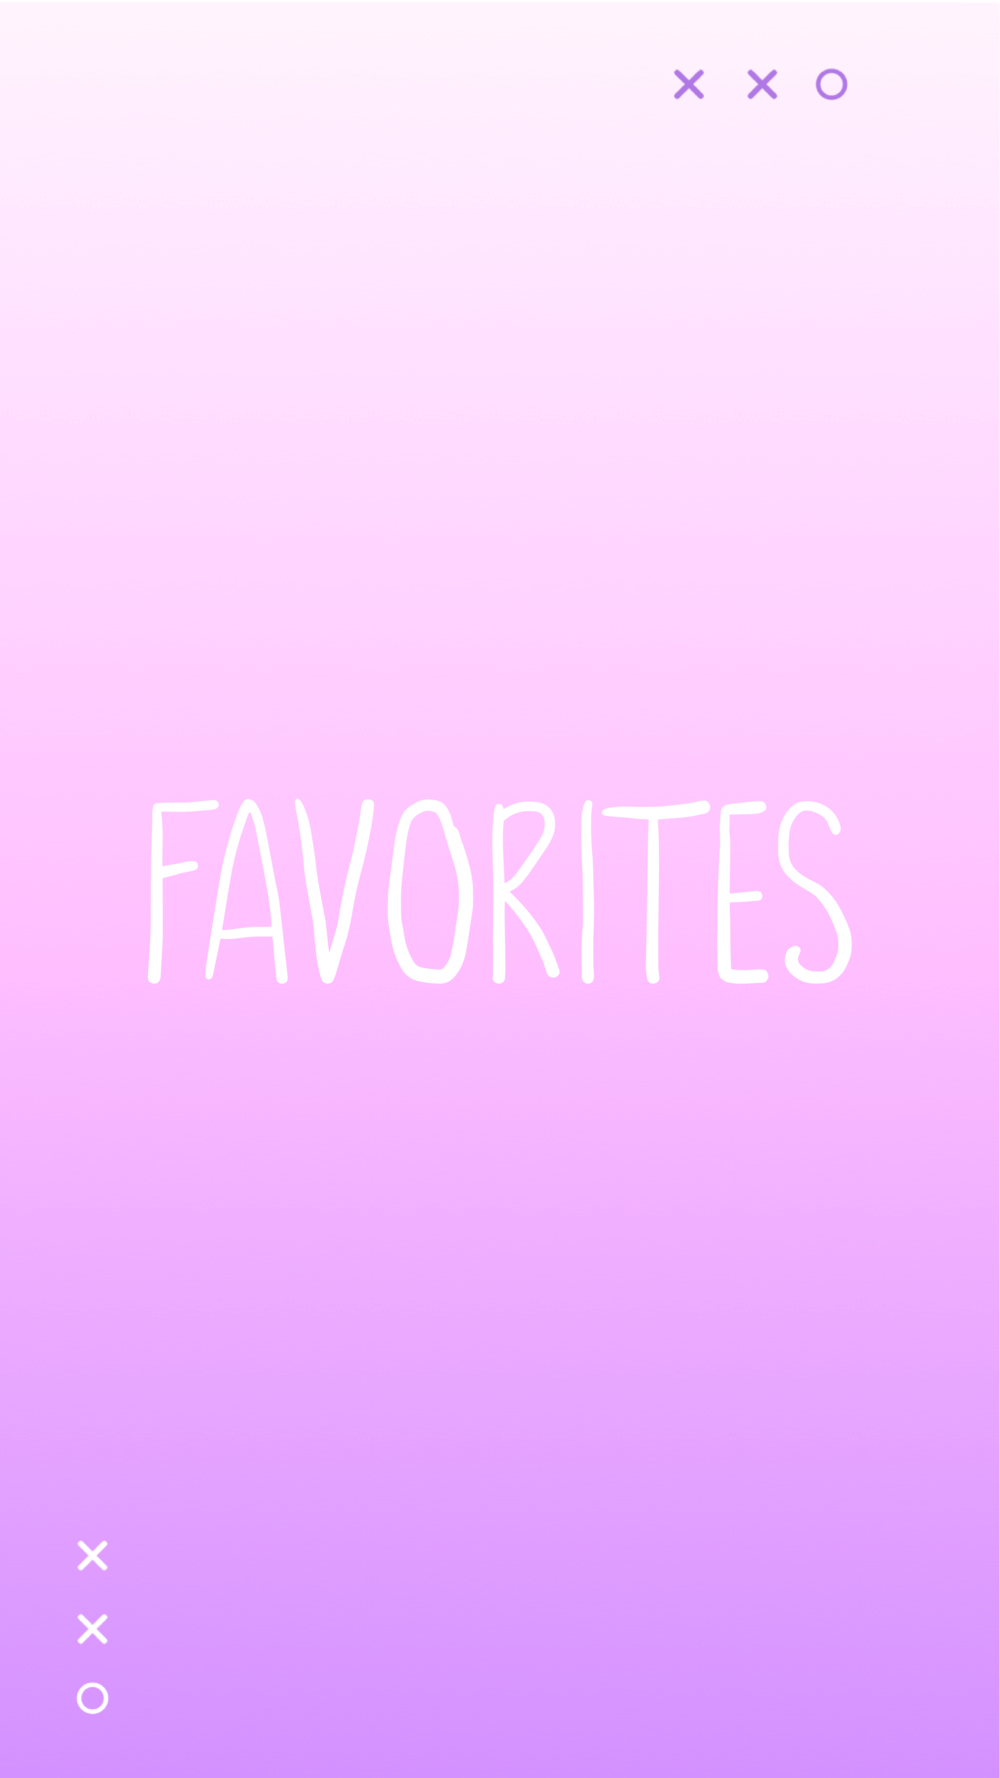 favorites.png